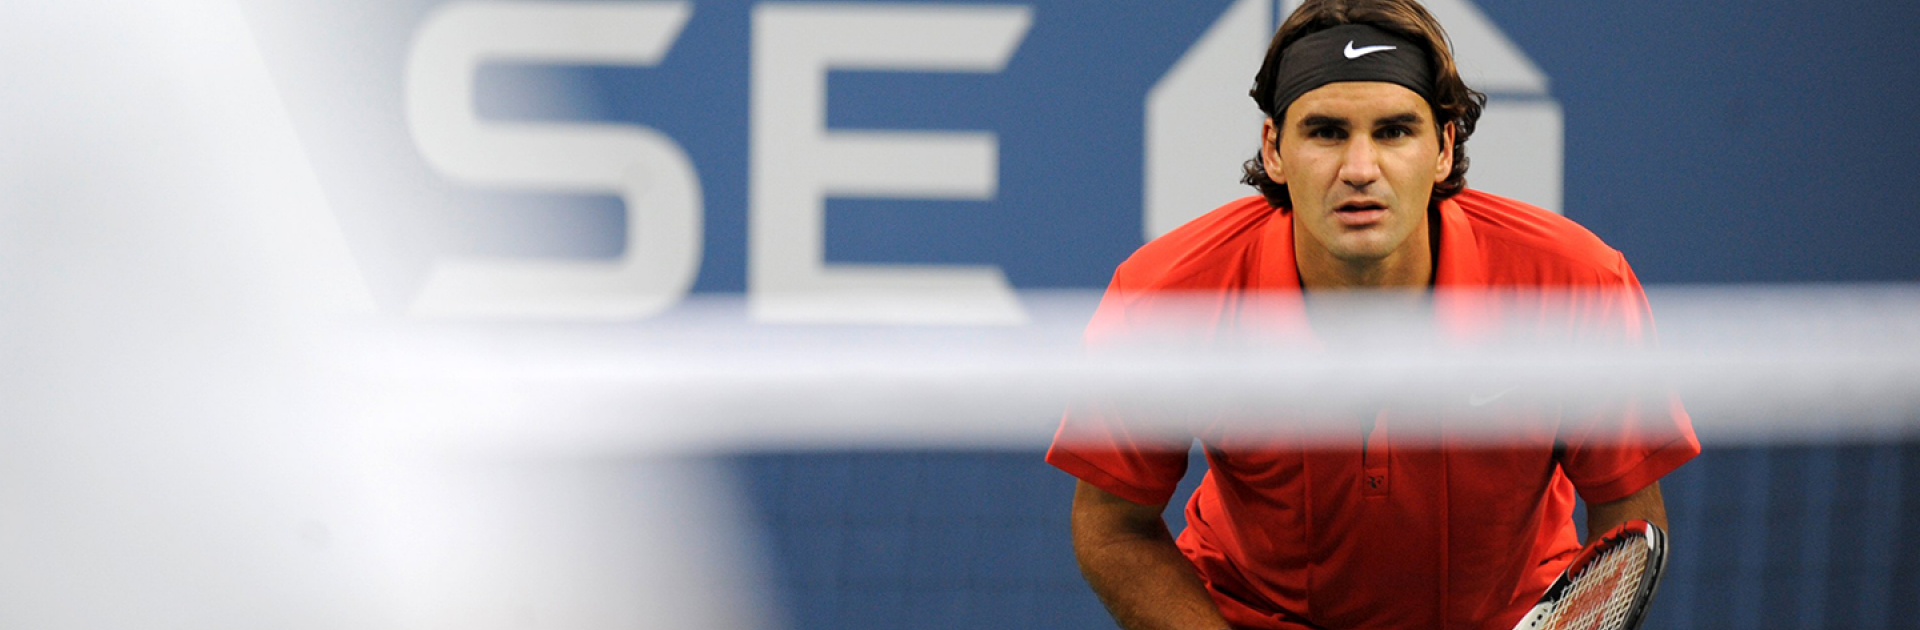 Roger Federer looking at the camera over the net on the tennis court.